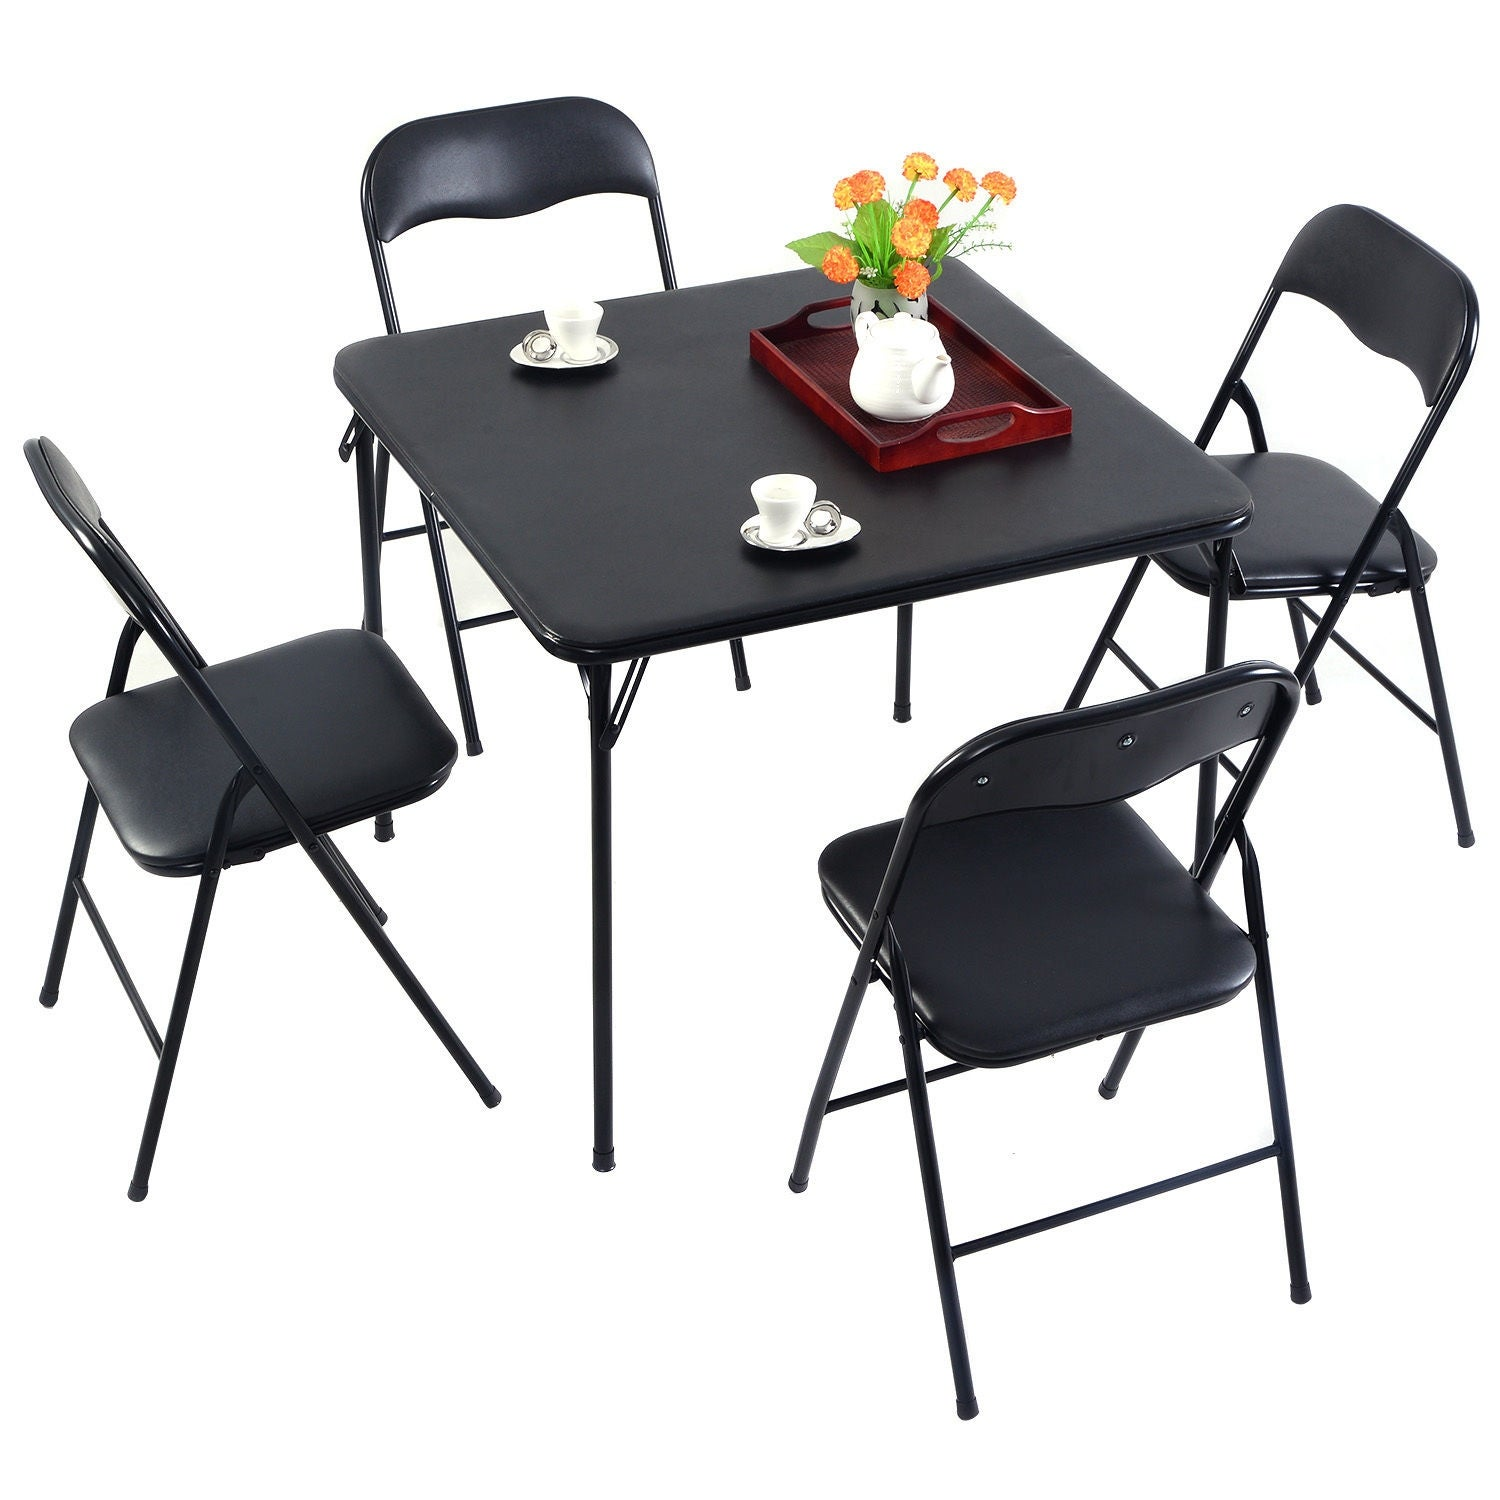 Costway 5PC Black Folding Table Chair Set Guest Games Dining Room Kitchen Multi-Purpose - Free Shipping Today - Overstock - 24631580  sc 1 st  Overstock.com & Costway 5PC Black Folding Table Chair Set Guest Games Dining Room ...